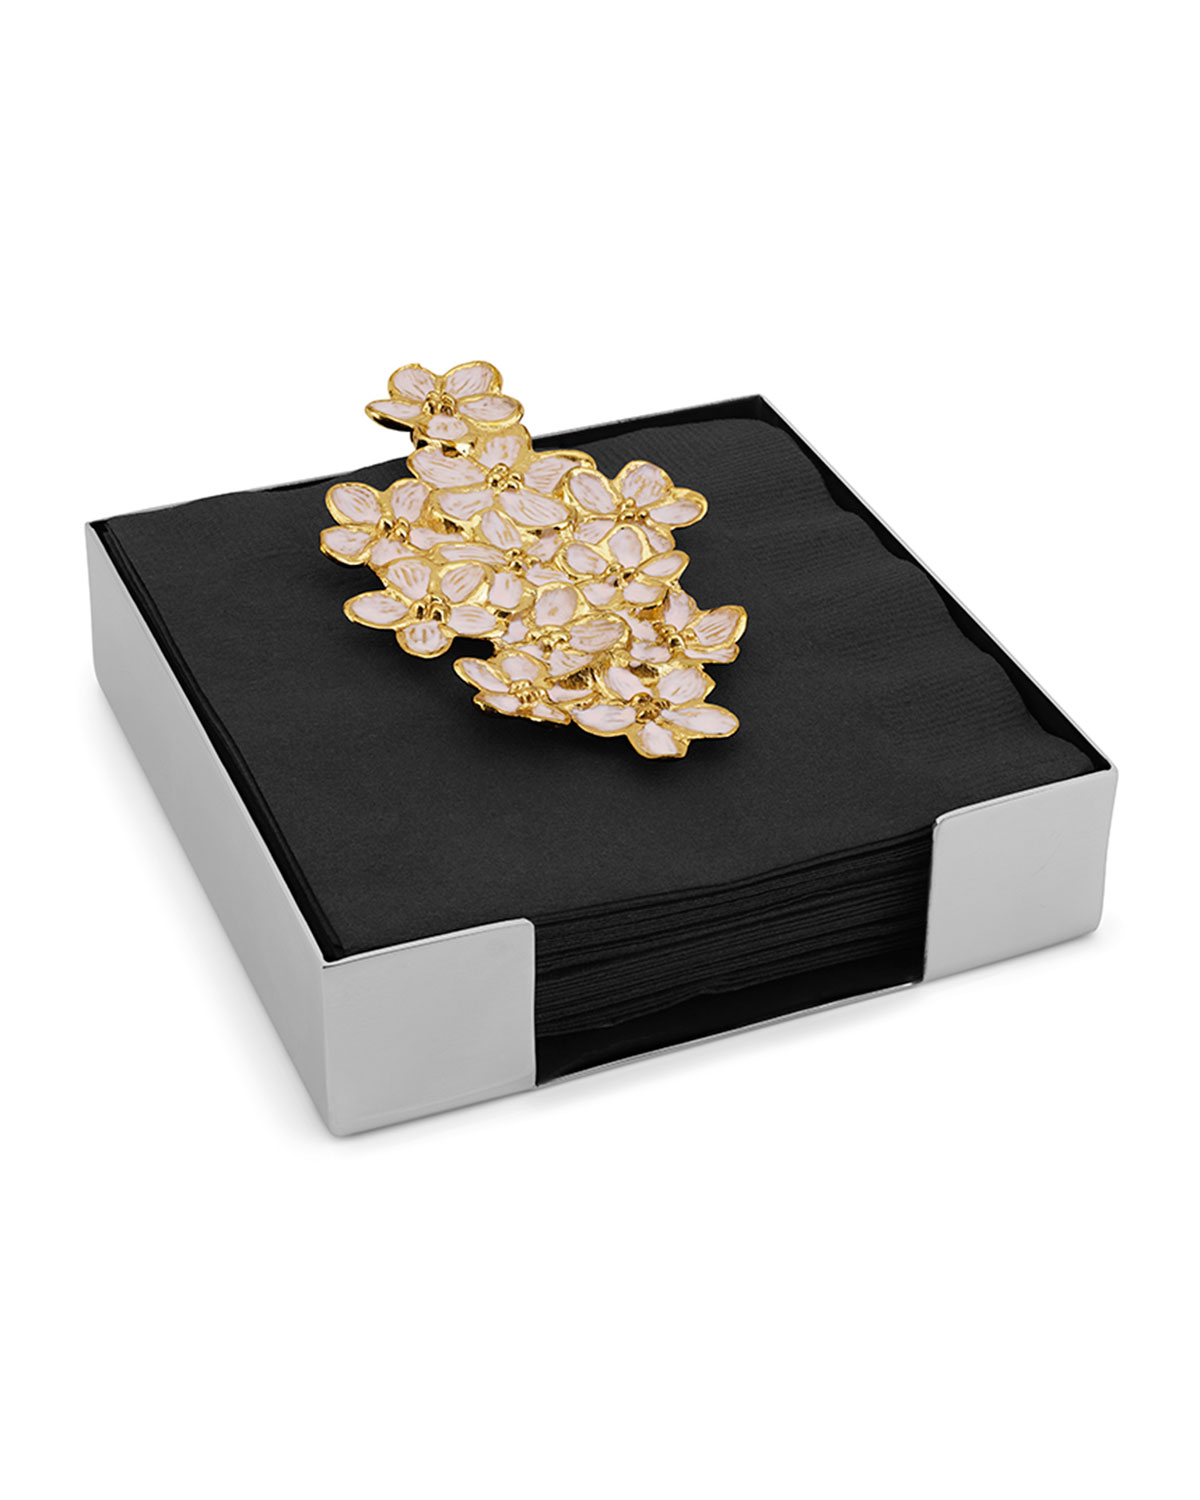 Michael Aram Cherry Blossom Cocktail Napkin Holder